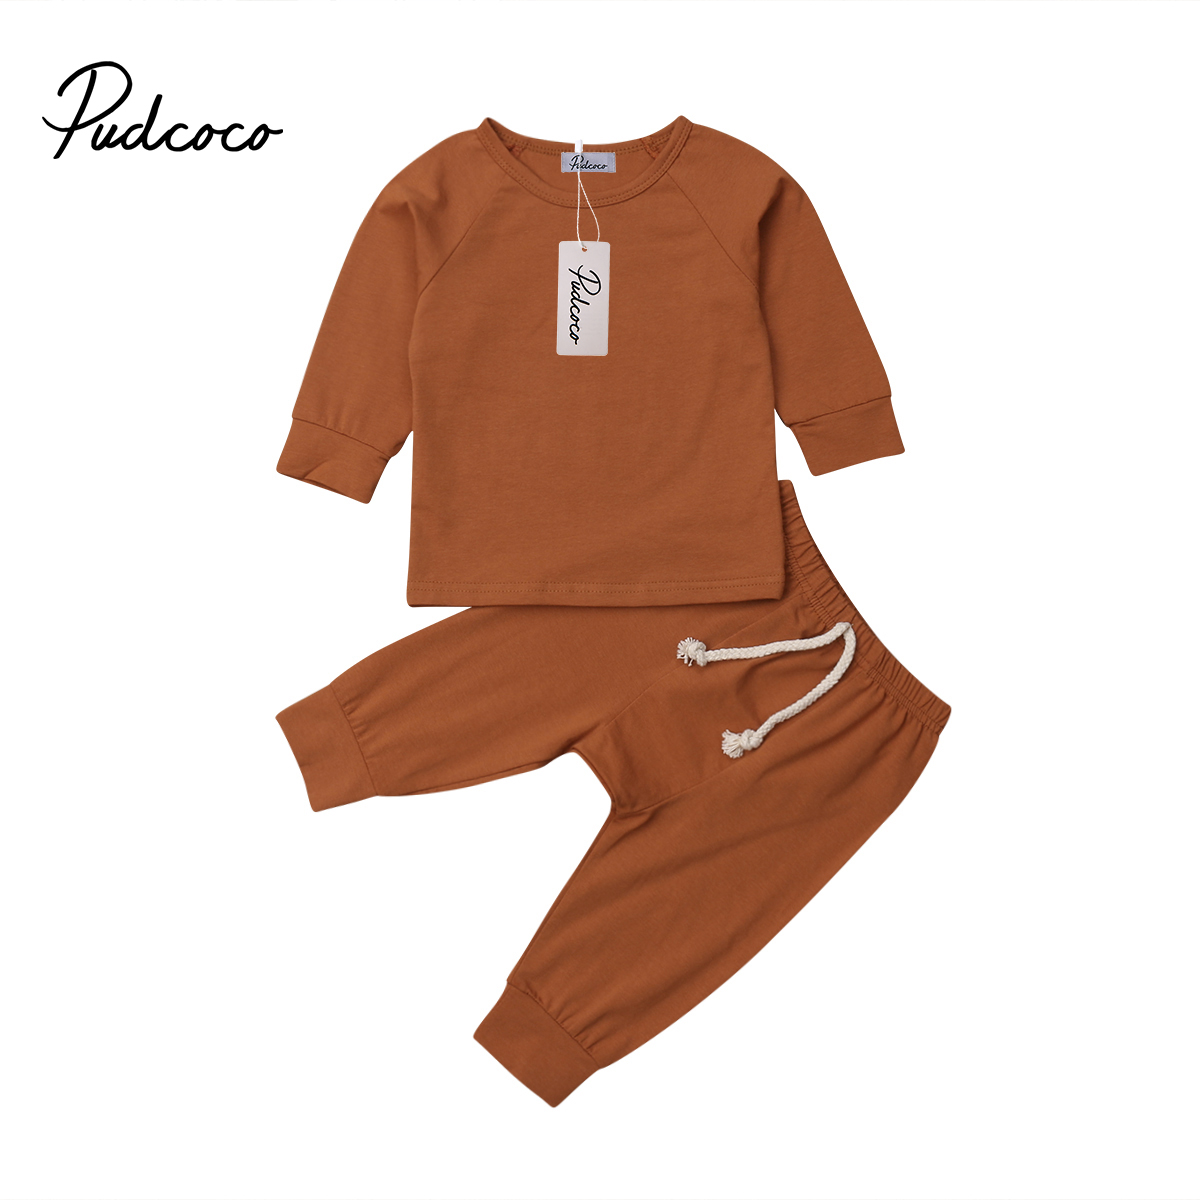 6 Color Baby Boy Girl Soft Cotton Pajamas Clothes  Set Sleepwear Nightwear Outfit For Newborn Infant Children Cloth Kid Clothing